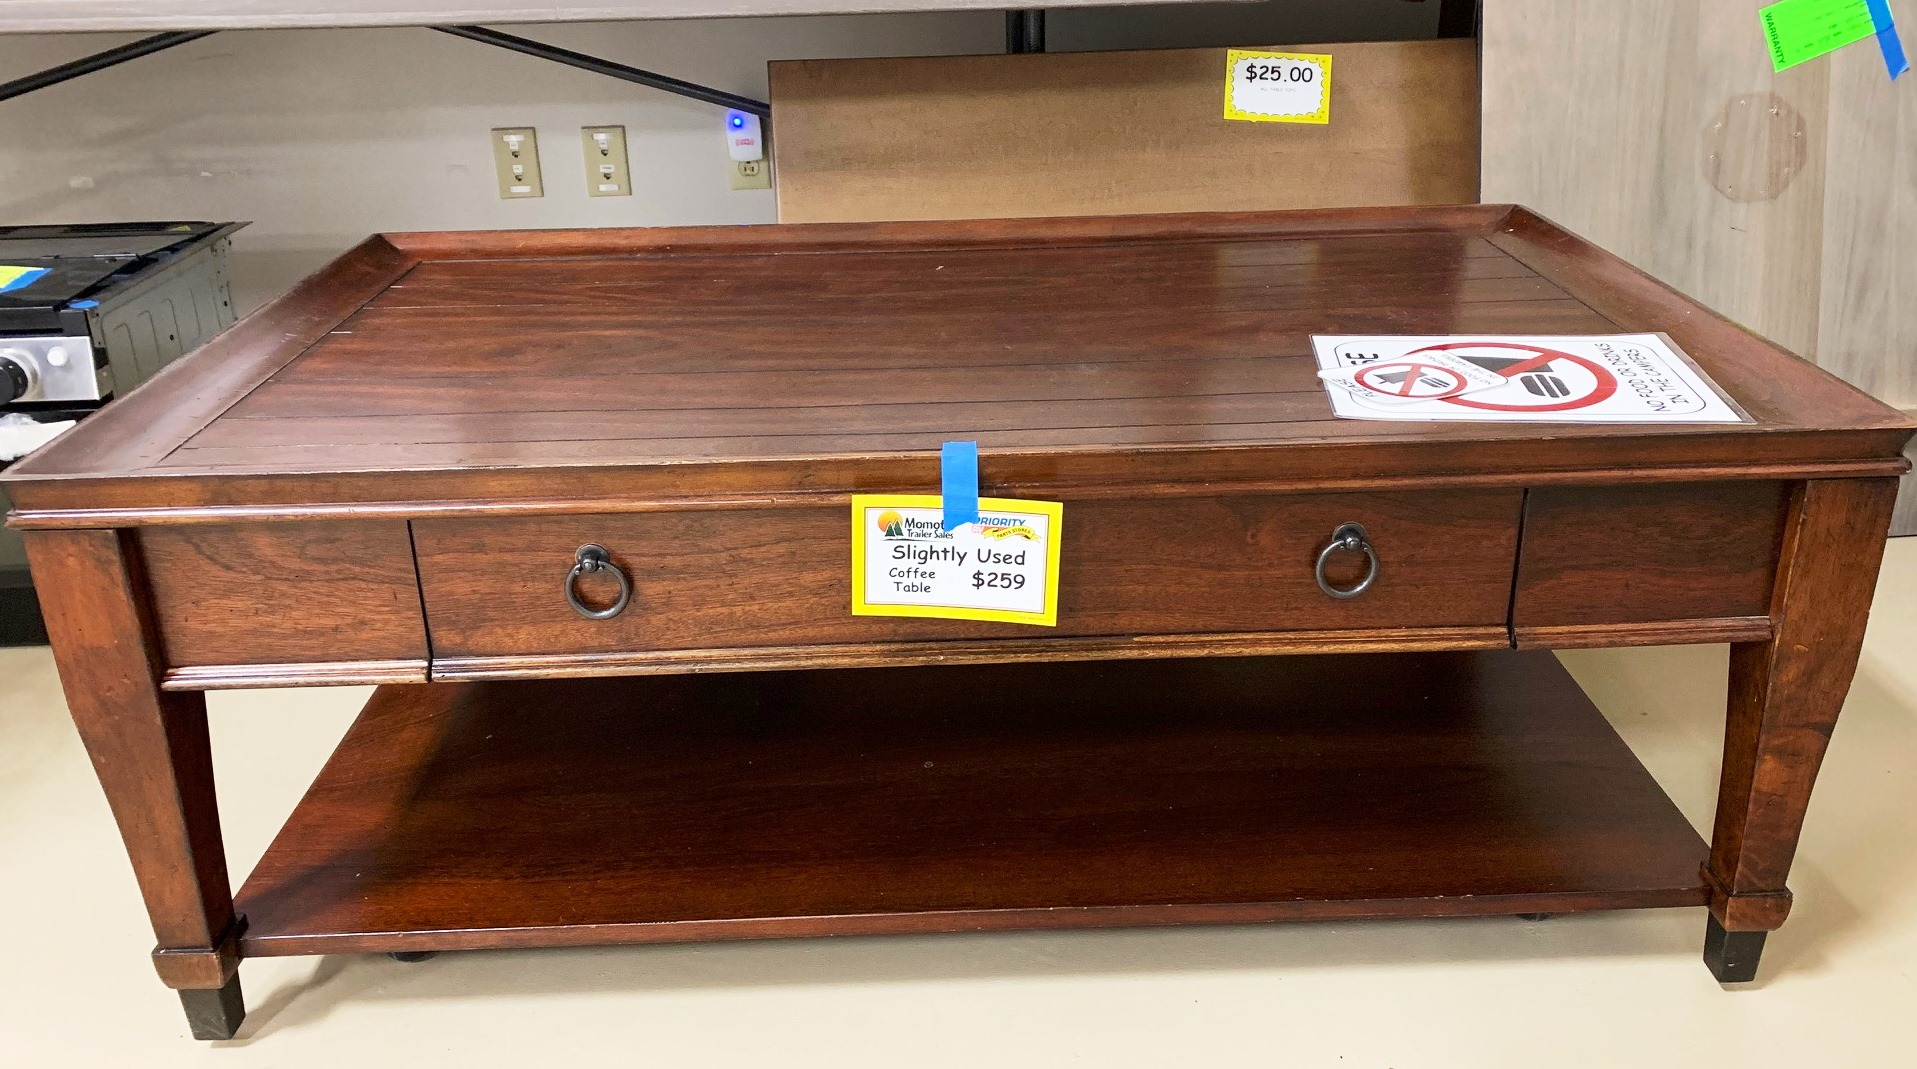 Slightly Used Coffee Table is on sale for $259!